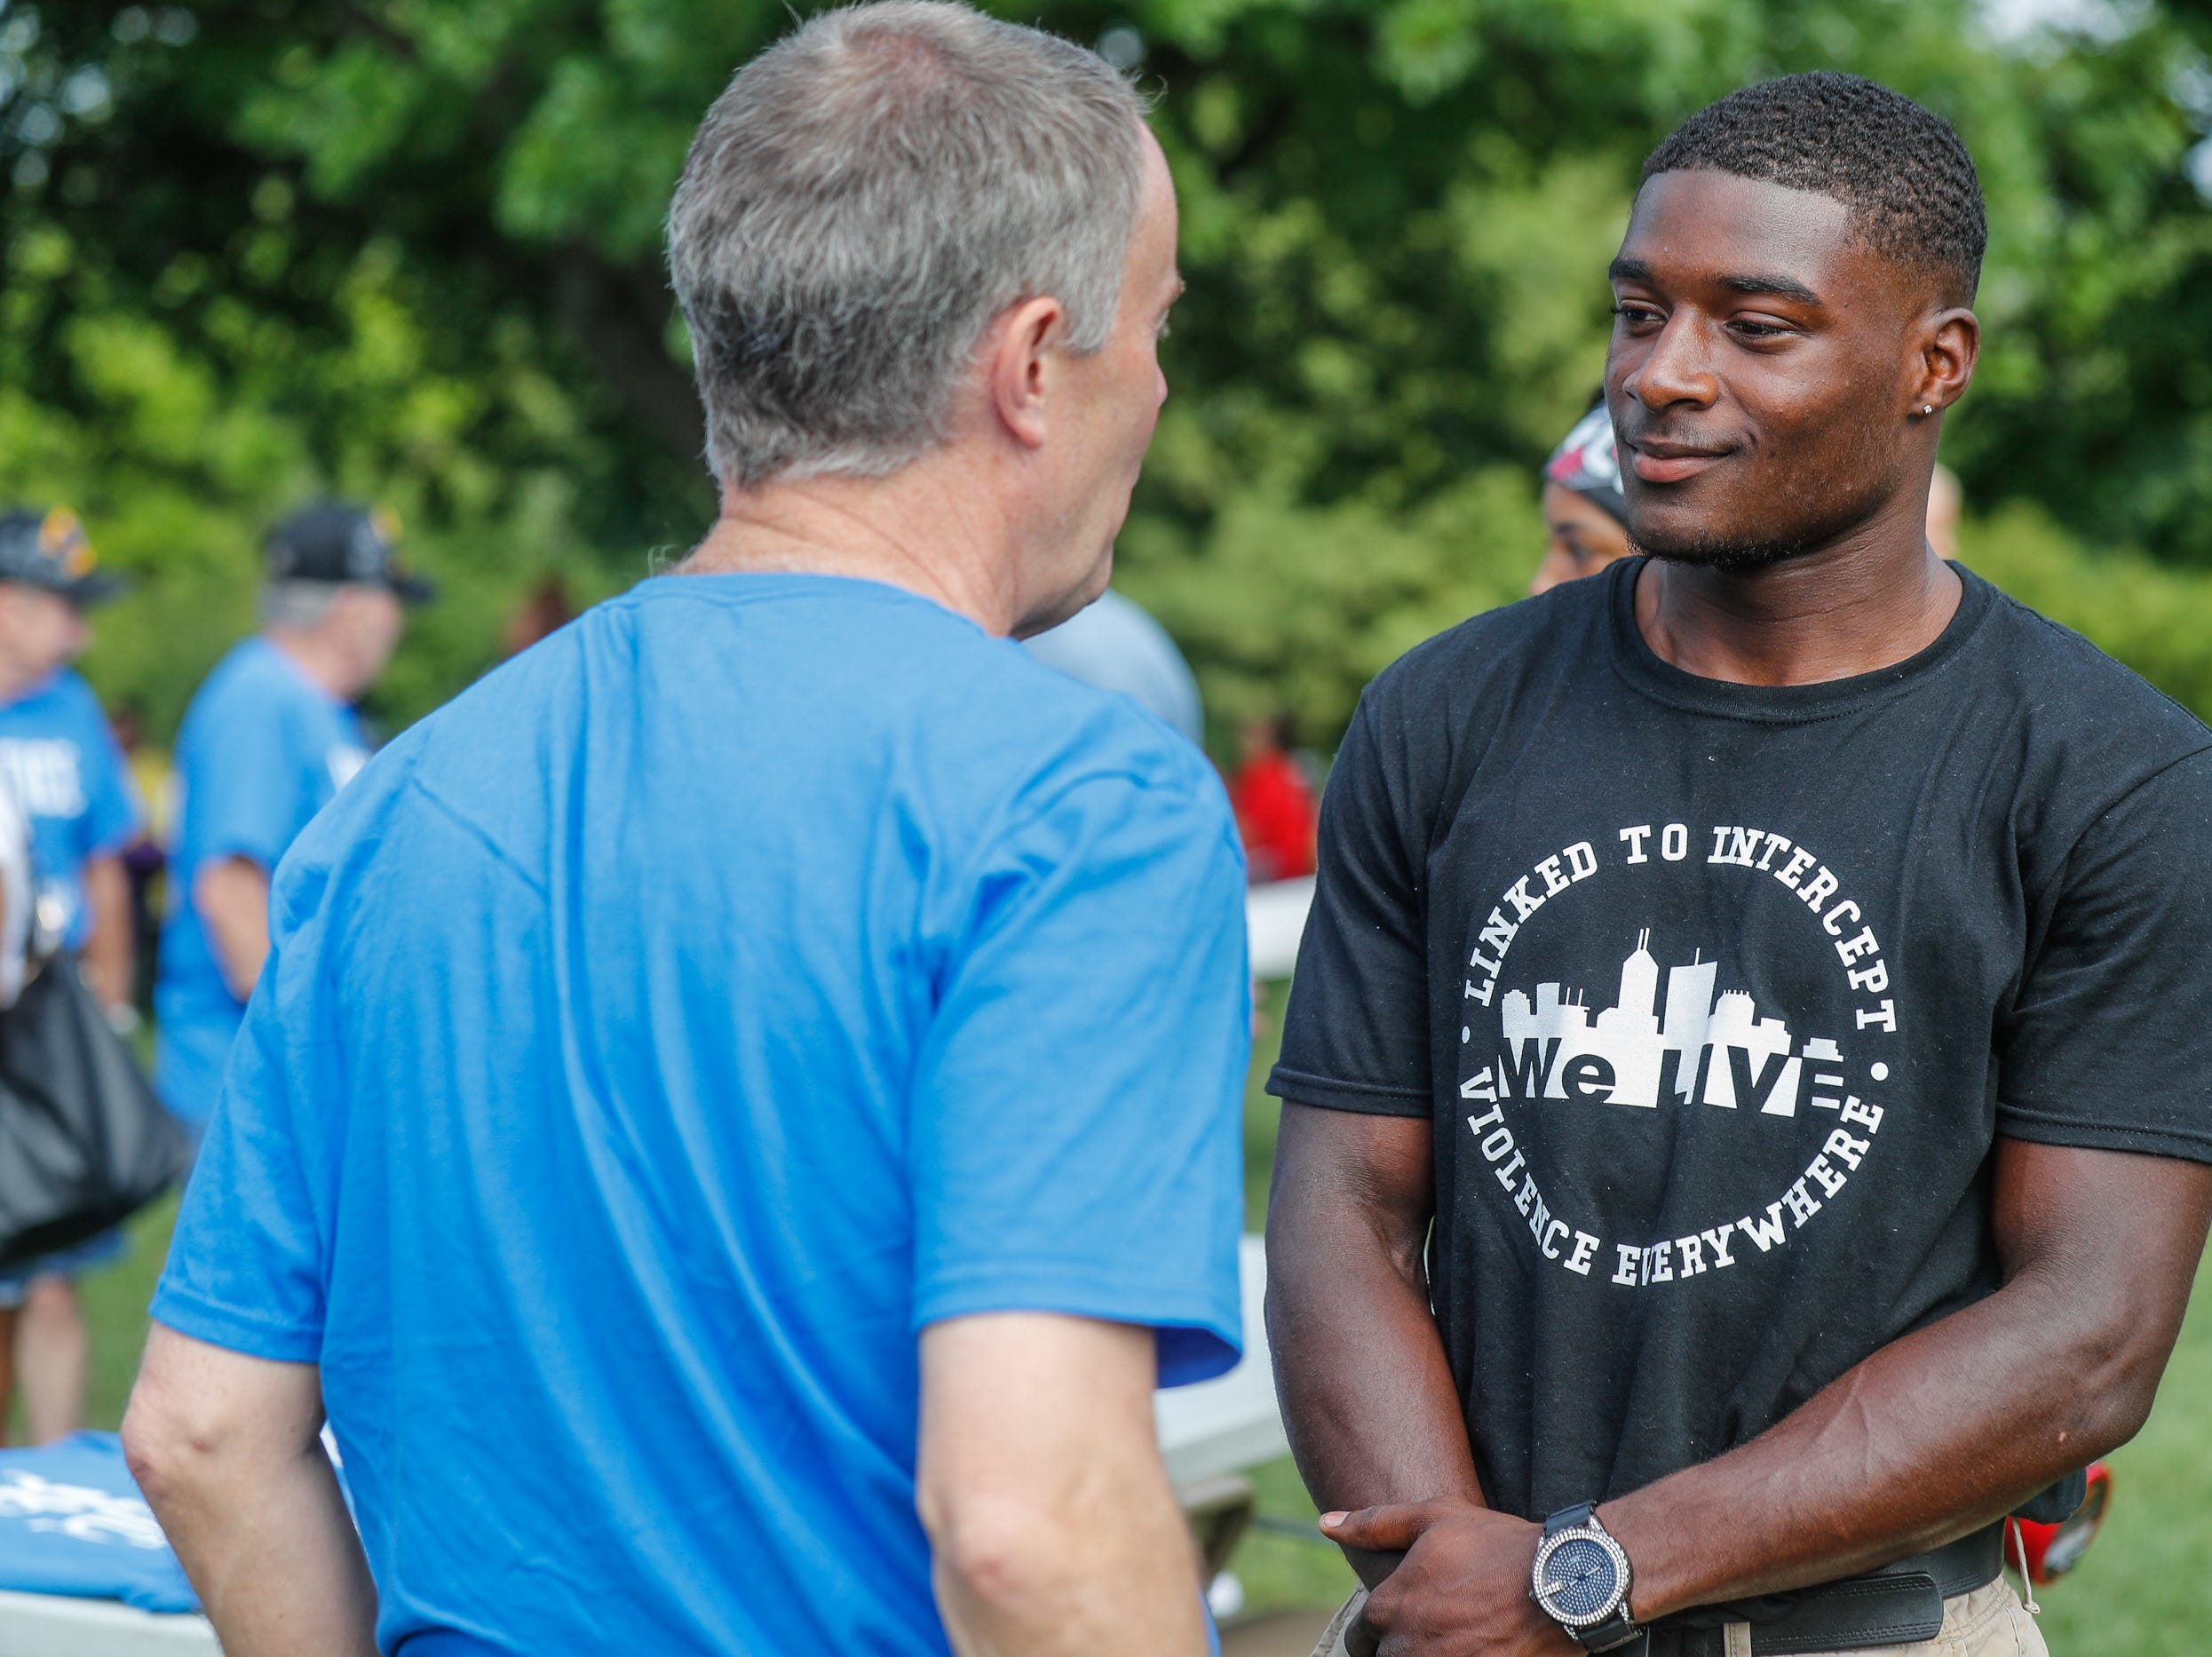 'We Live' President, Isaiah Warren, right, speaks with Indianapolis Mayor Joe Hogsett during the second annual Peace Walk and Community Day to end youth violence at Washington Park on Saturday, Aug. 11, 2018. 'We Live,' which stands for 'Linked To Intercept Violence' was started by students from Warren Central High School in Indianapolis.